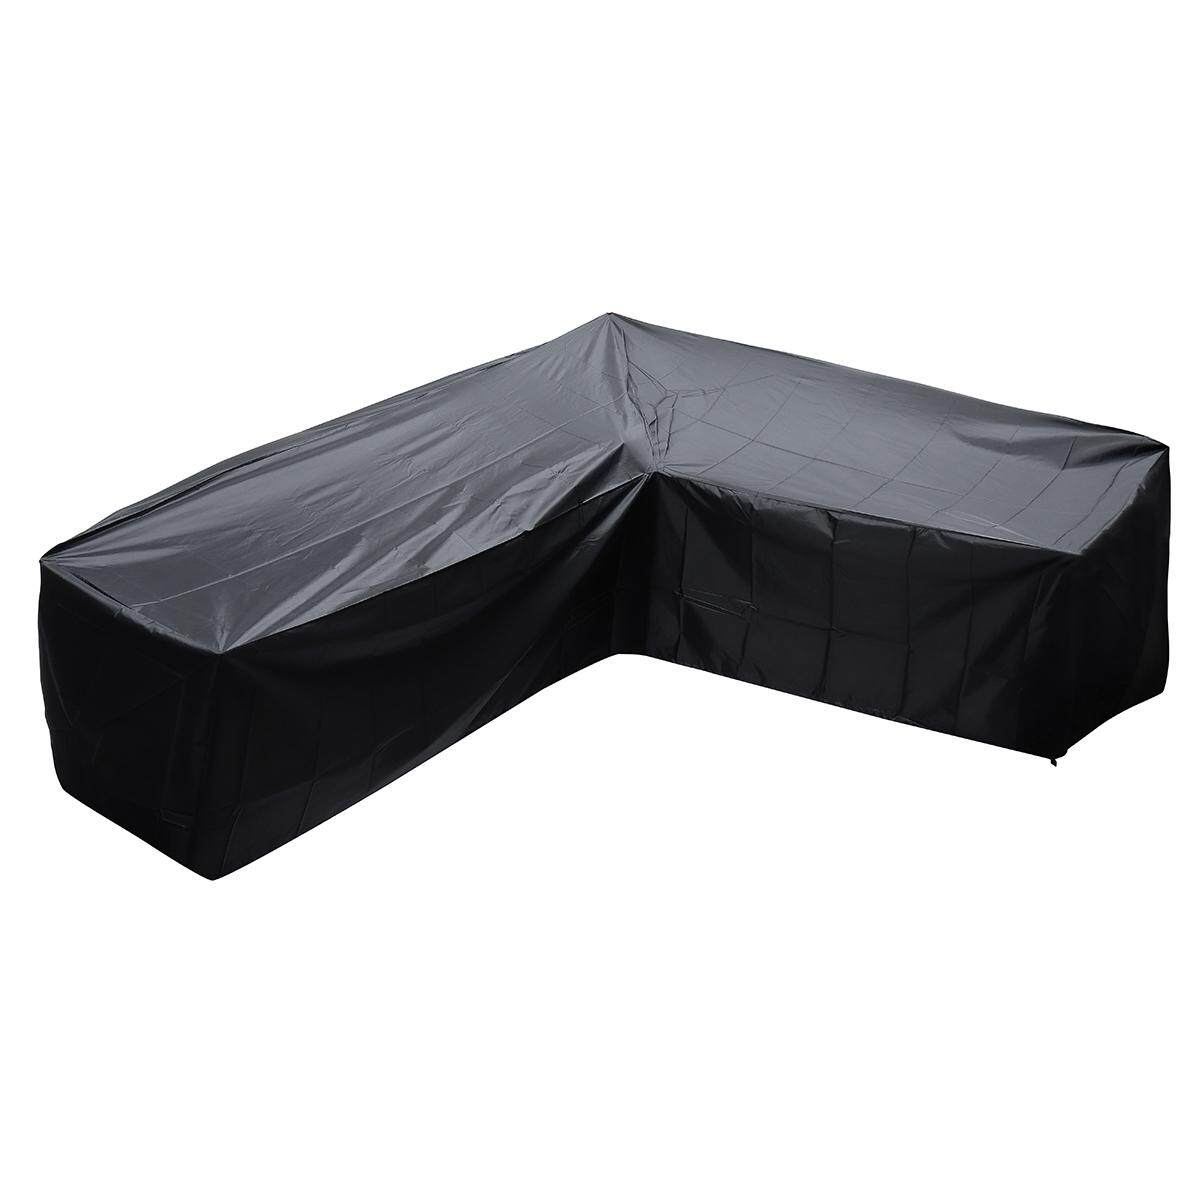 Waterproof Polyester Outdoor Garden Cover Sofa Furniture L Shape Furniture Cover #Small size